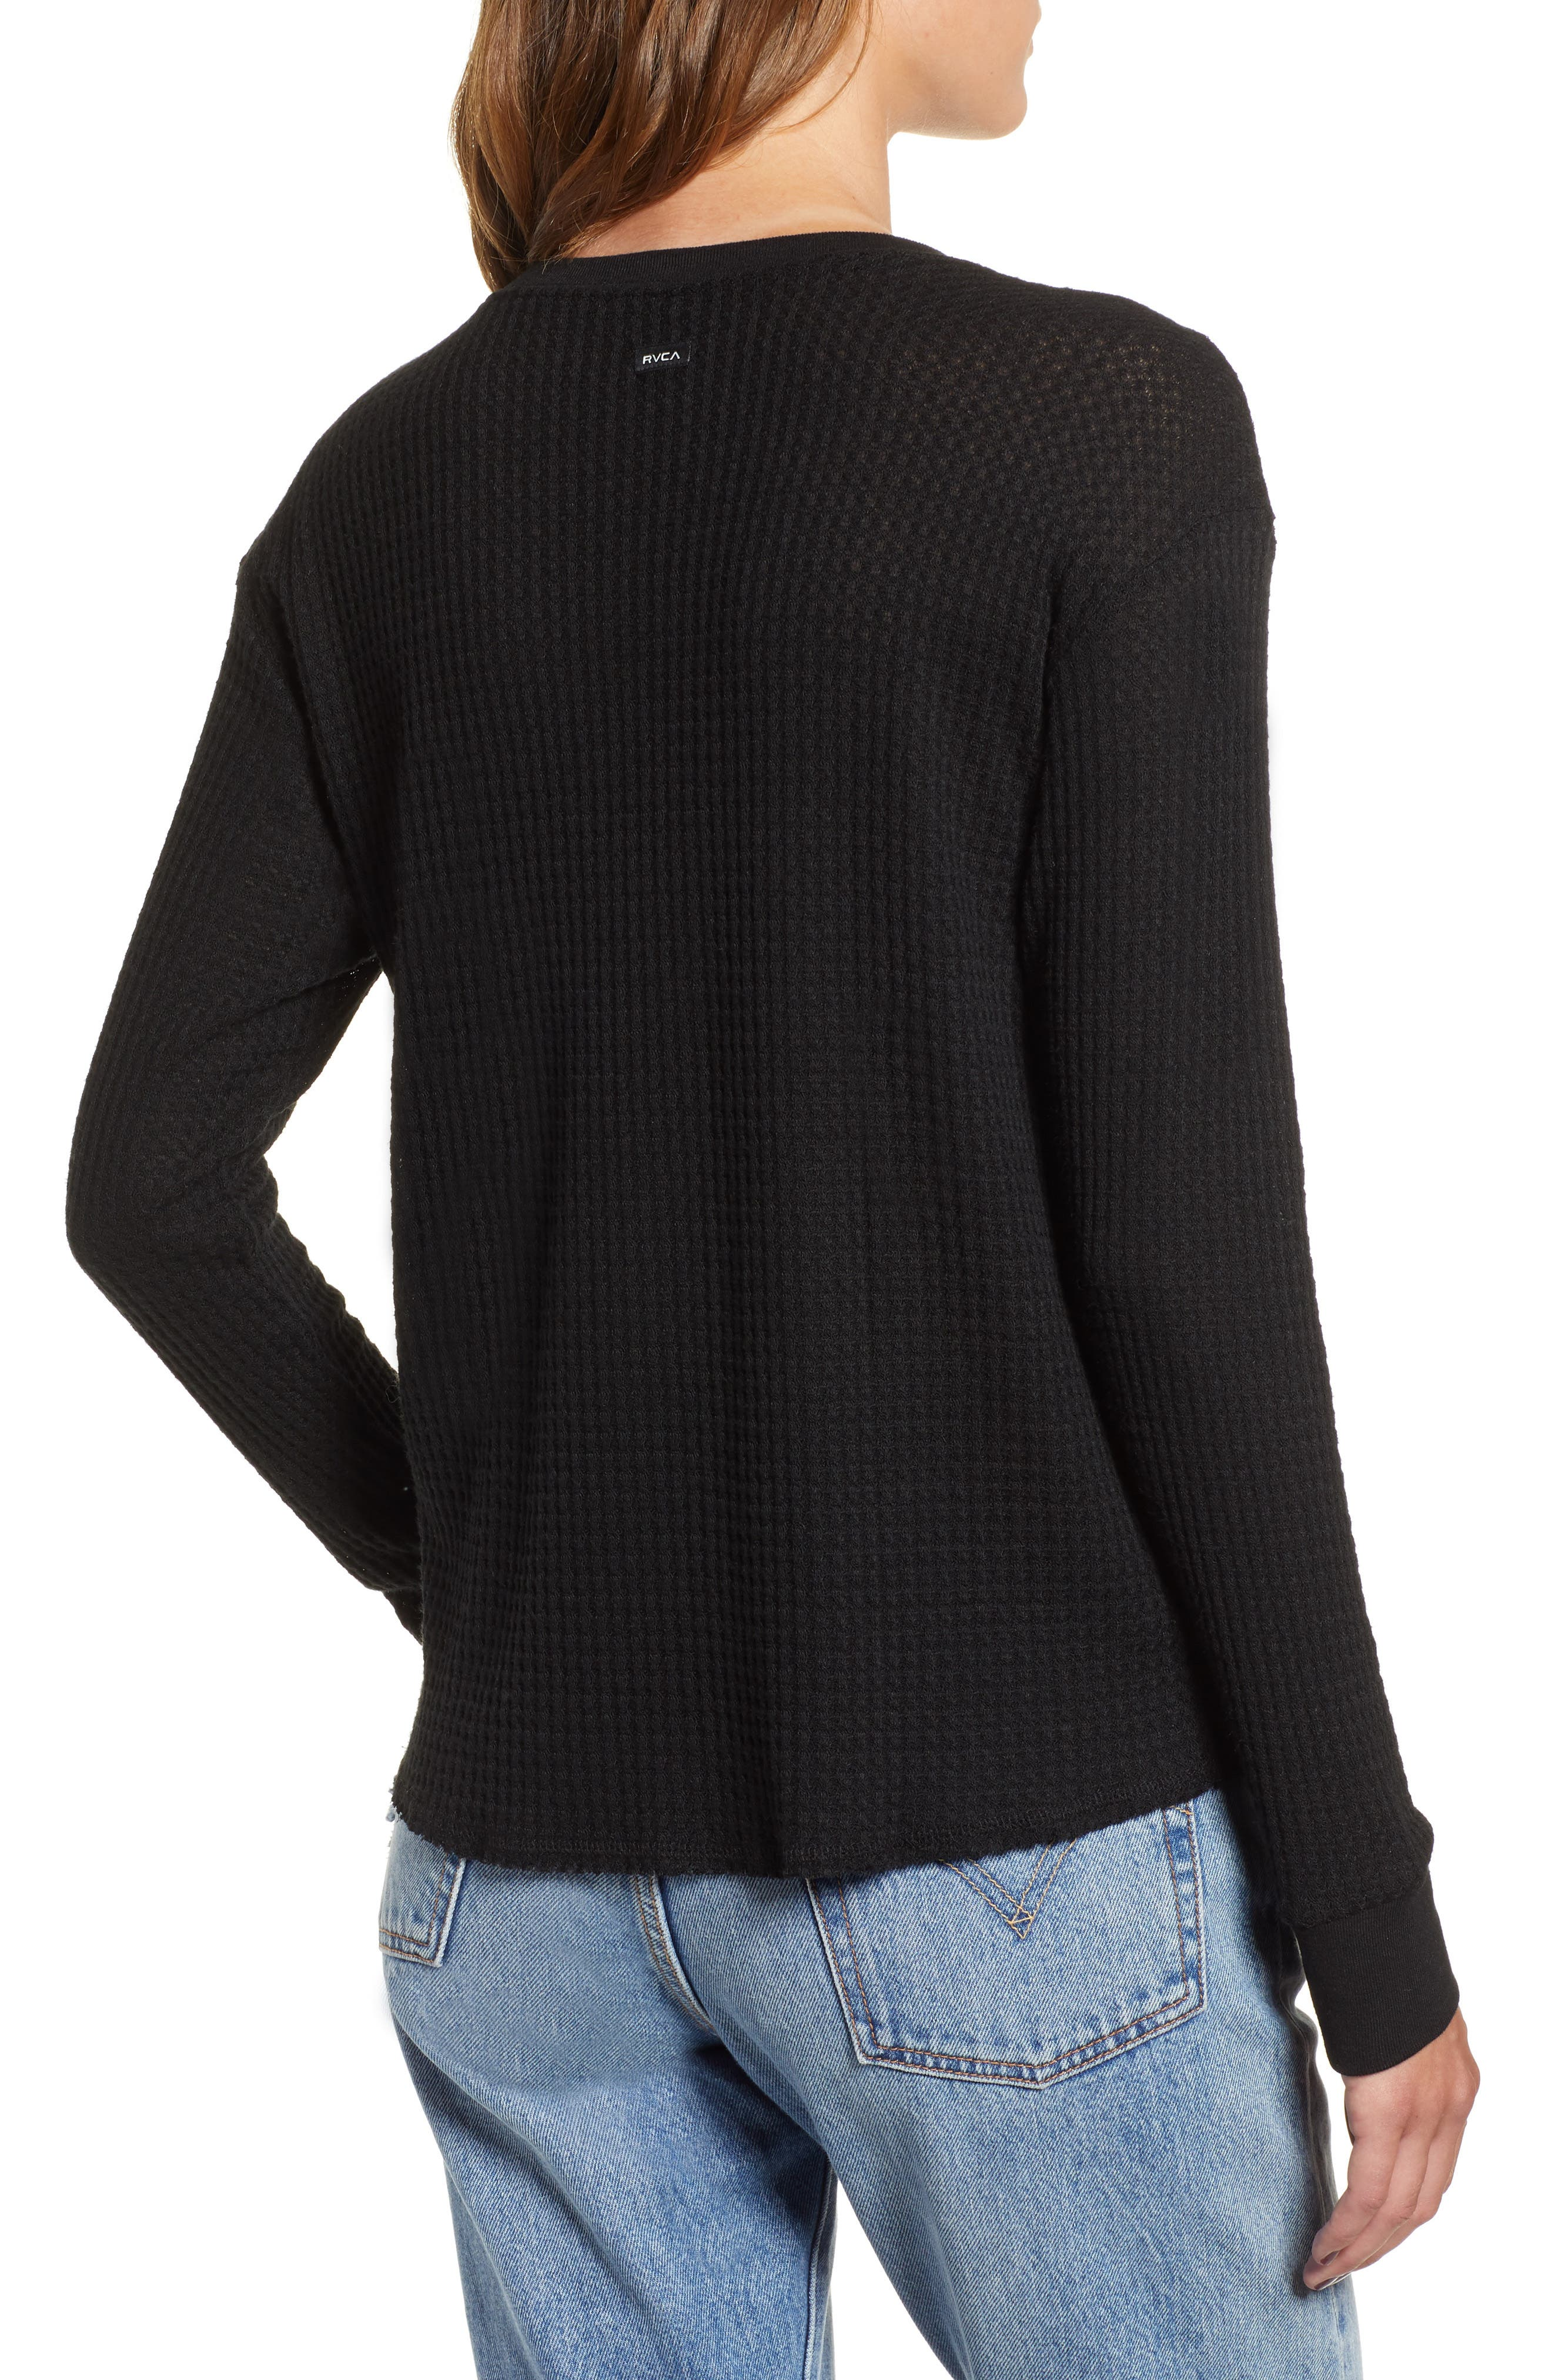 Cited Waffle Knit Pullover Top,                             Alternate thumbnail 2, color,                             001